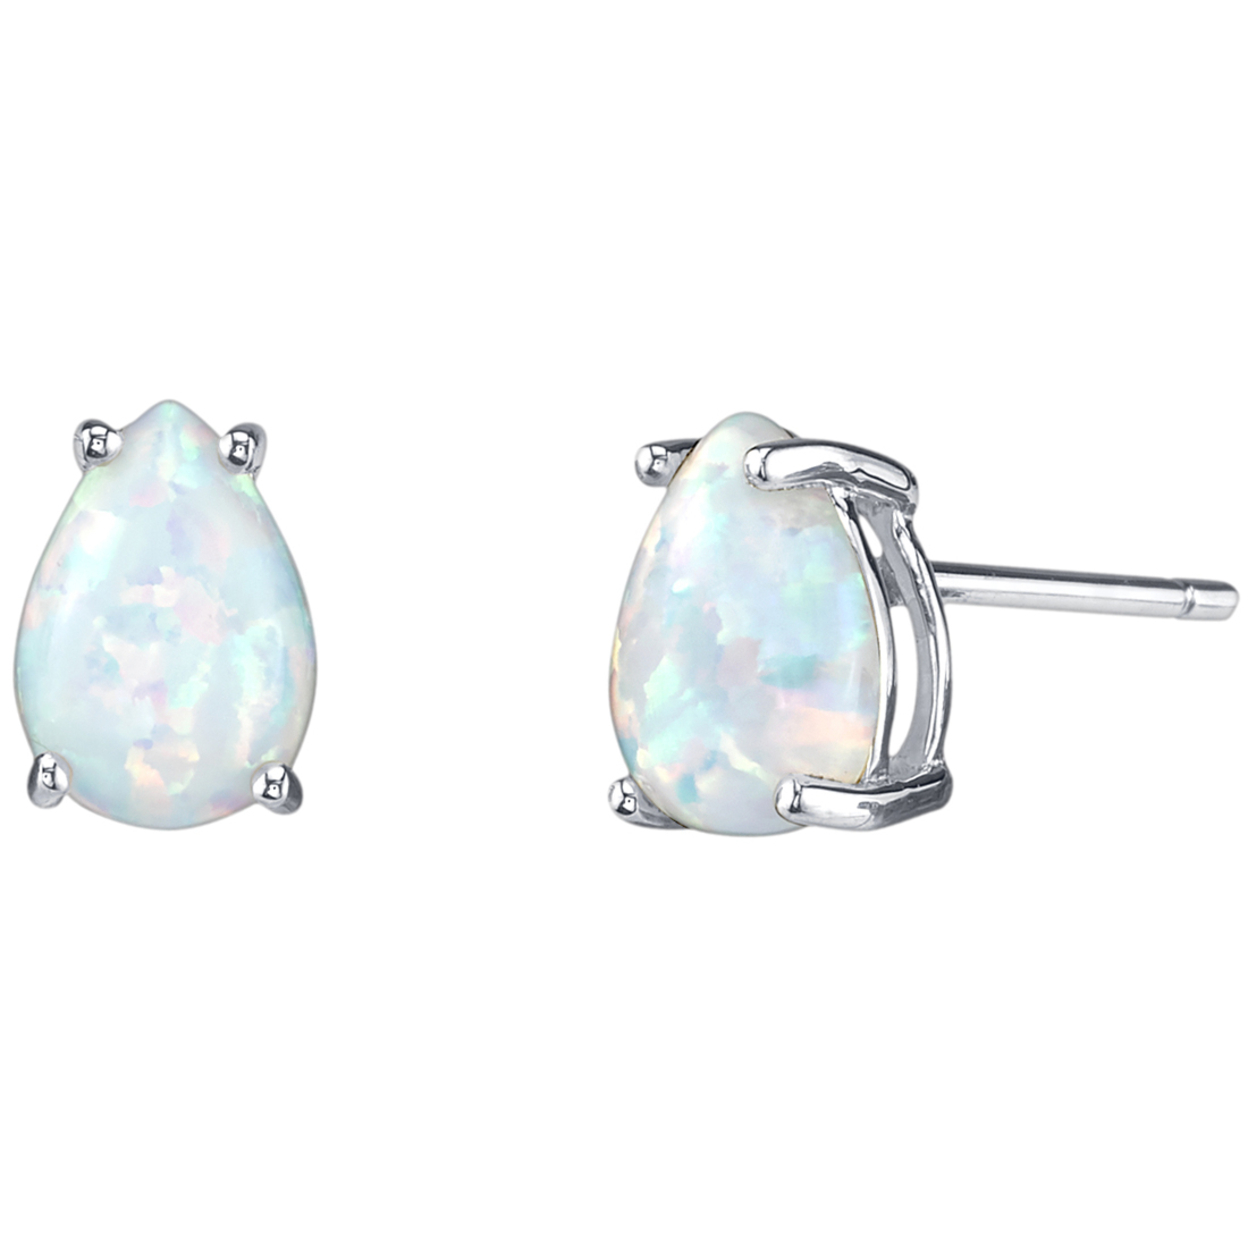 Oravo 14k White Gold Pear Shape Created Opal Stud Earrings